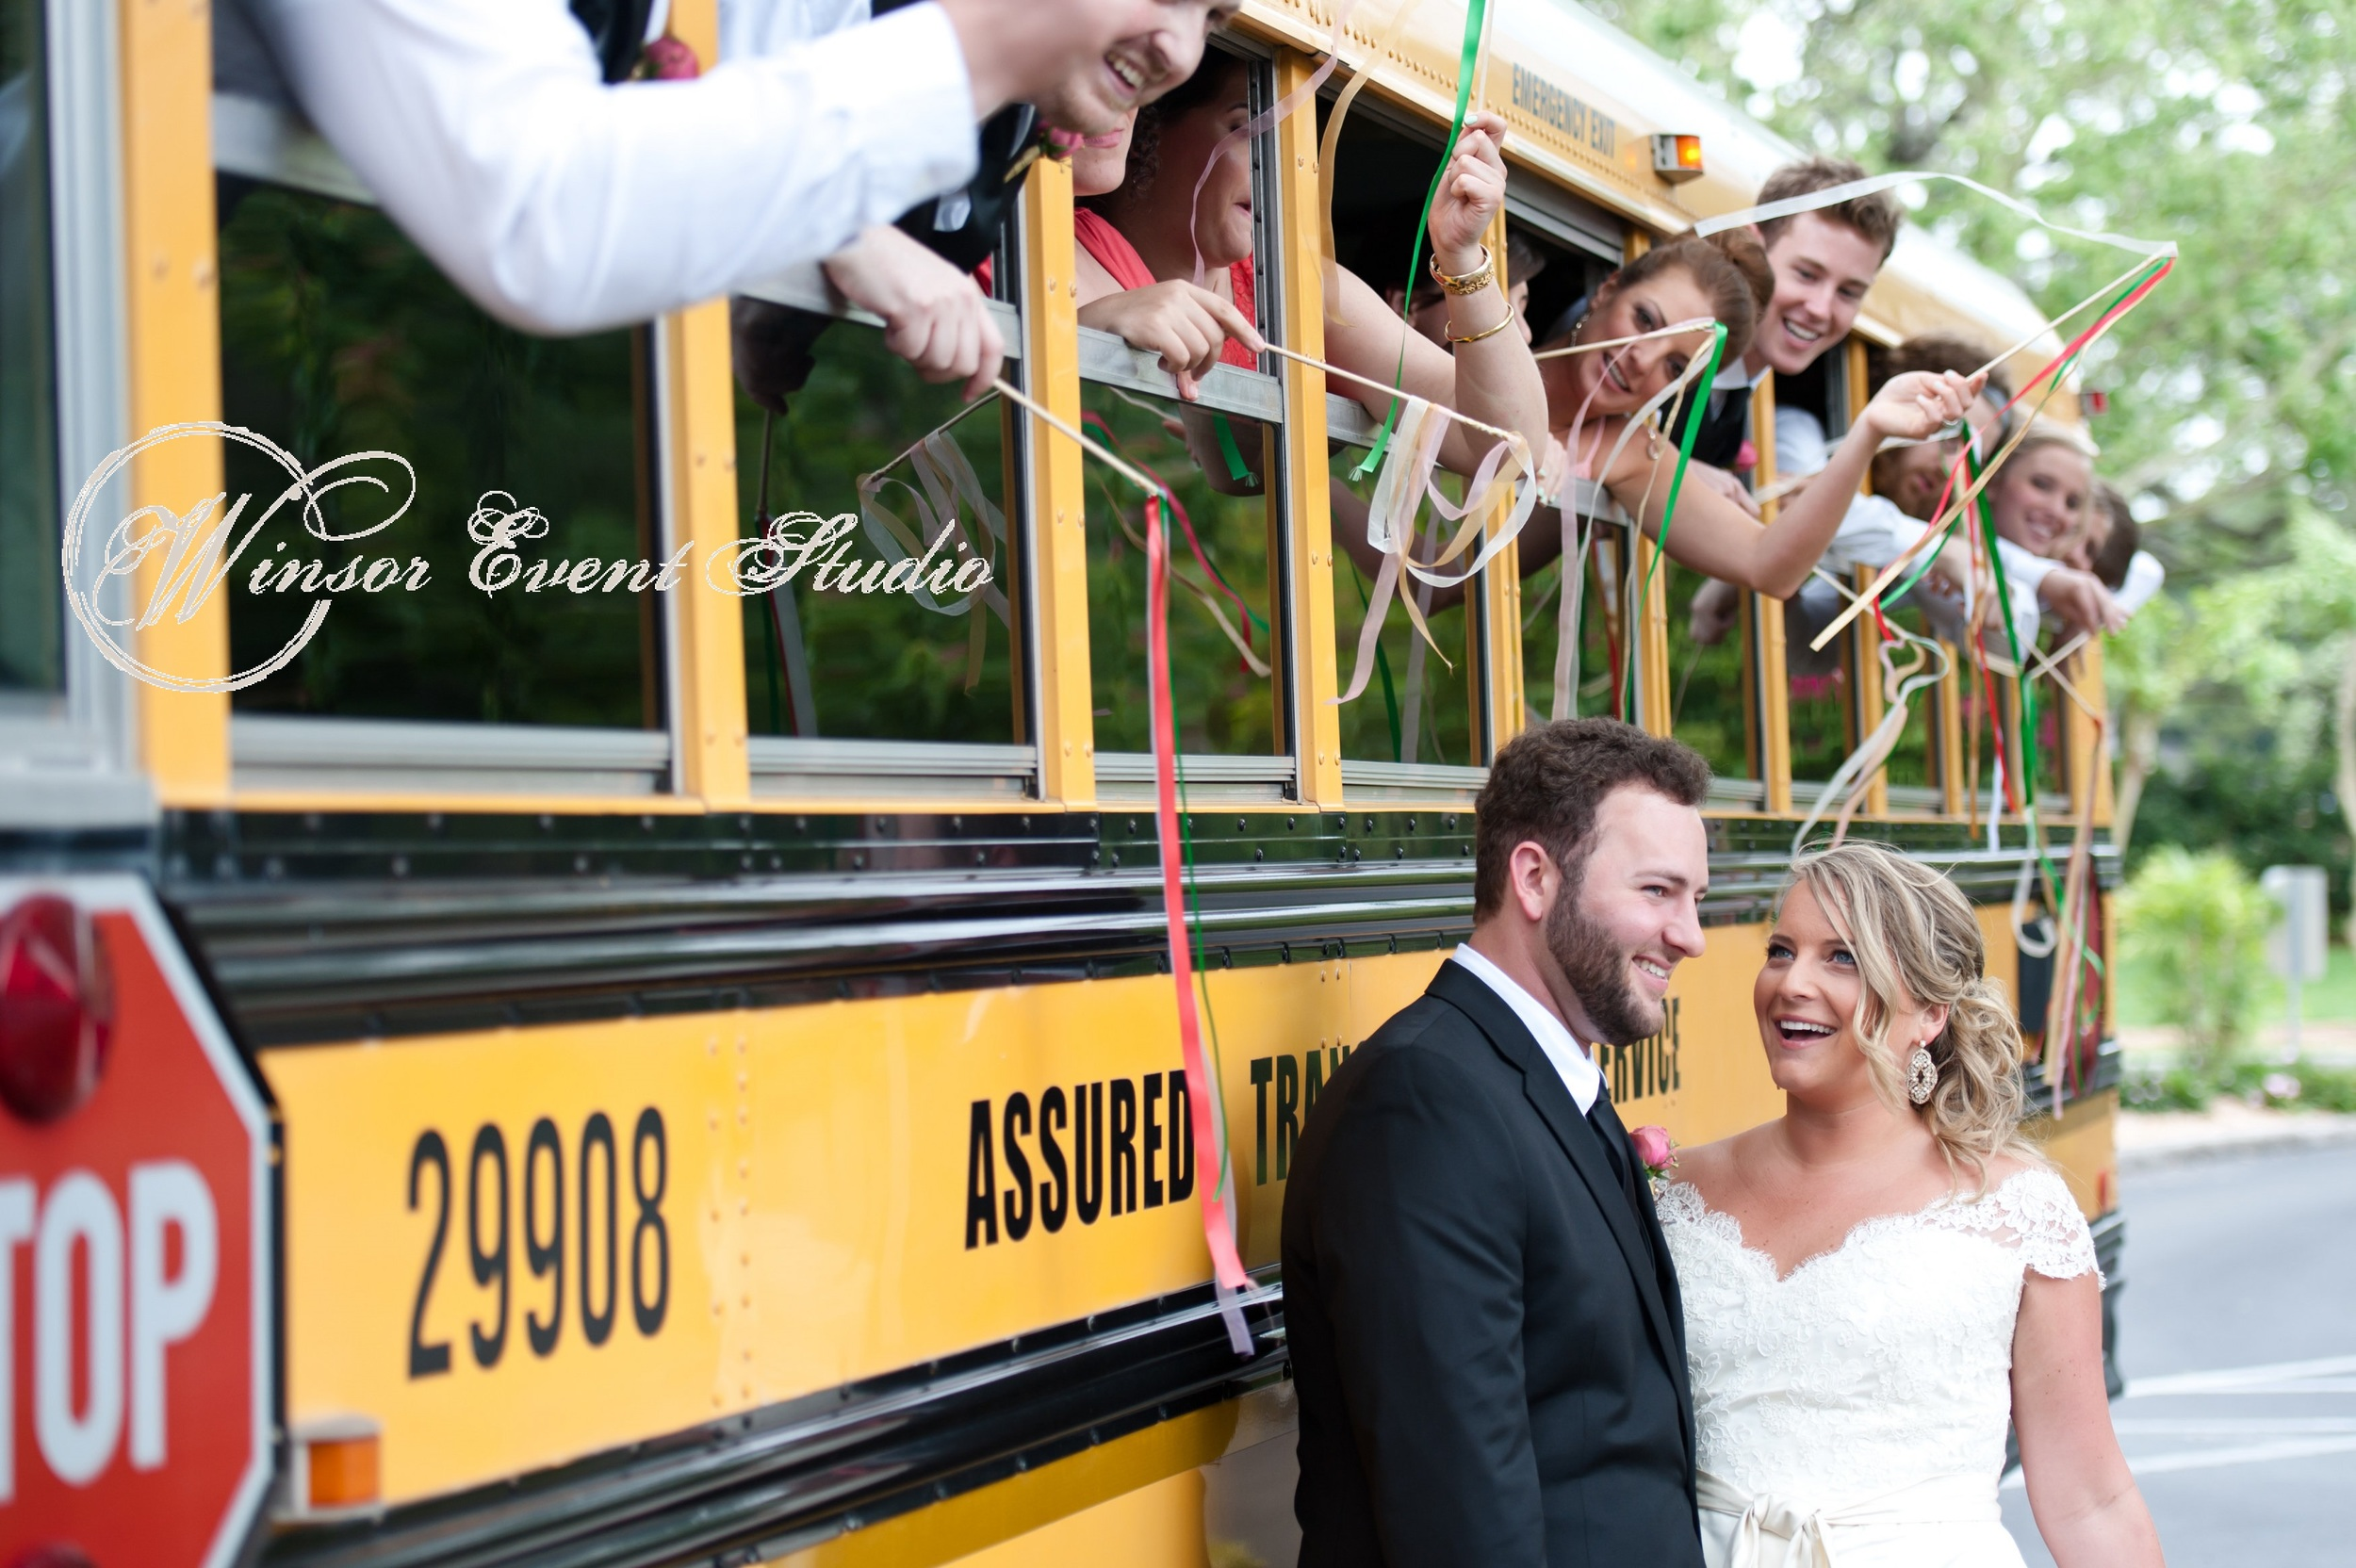 The wedding party commuted between the ceremony and reception via a chartered school bus